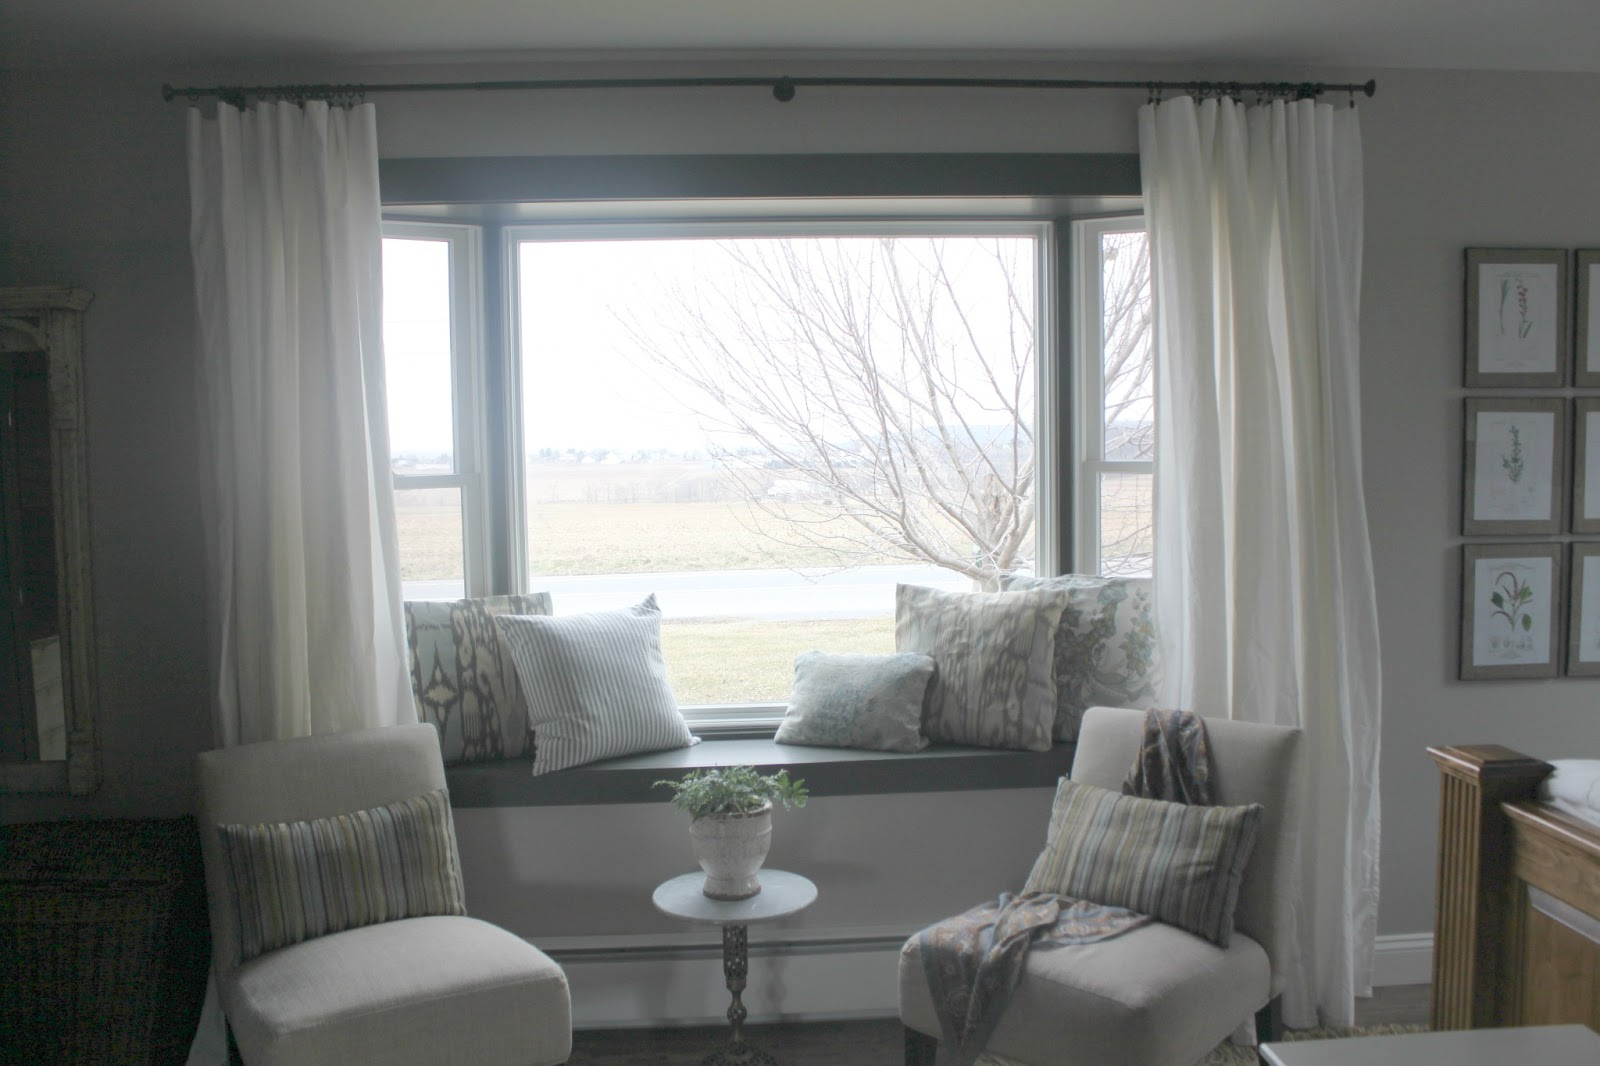 living room window sill decorating ideas furniture for a small bay couch – perfect angle to indulge your eyes ...